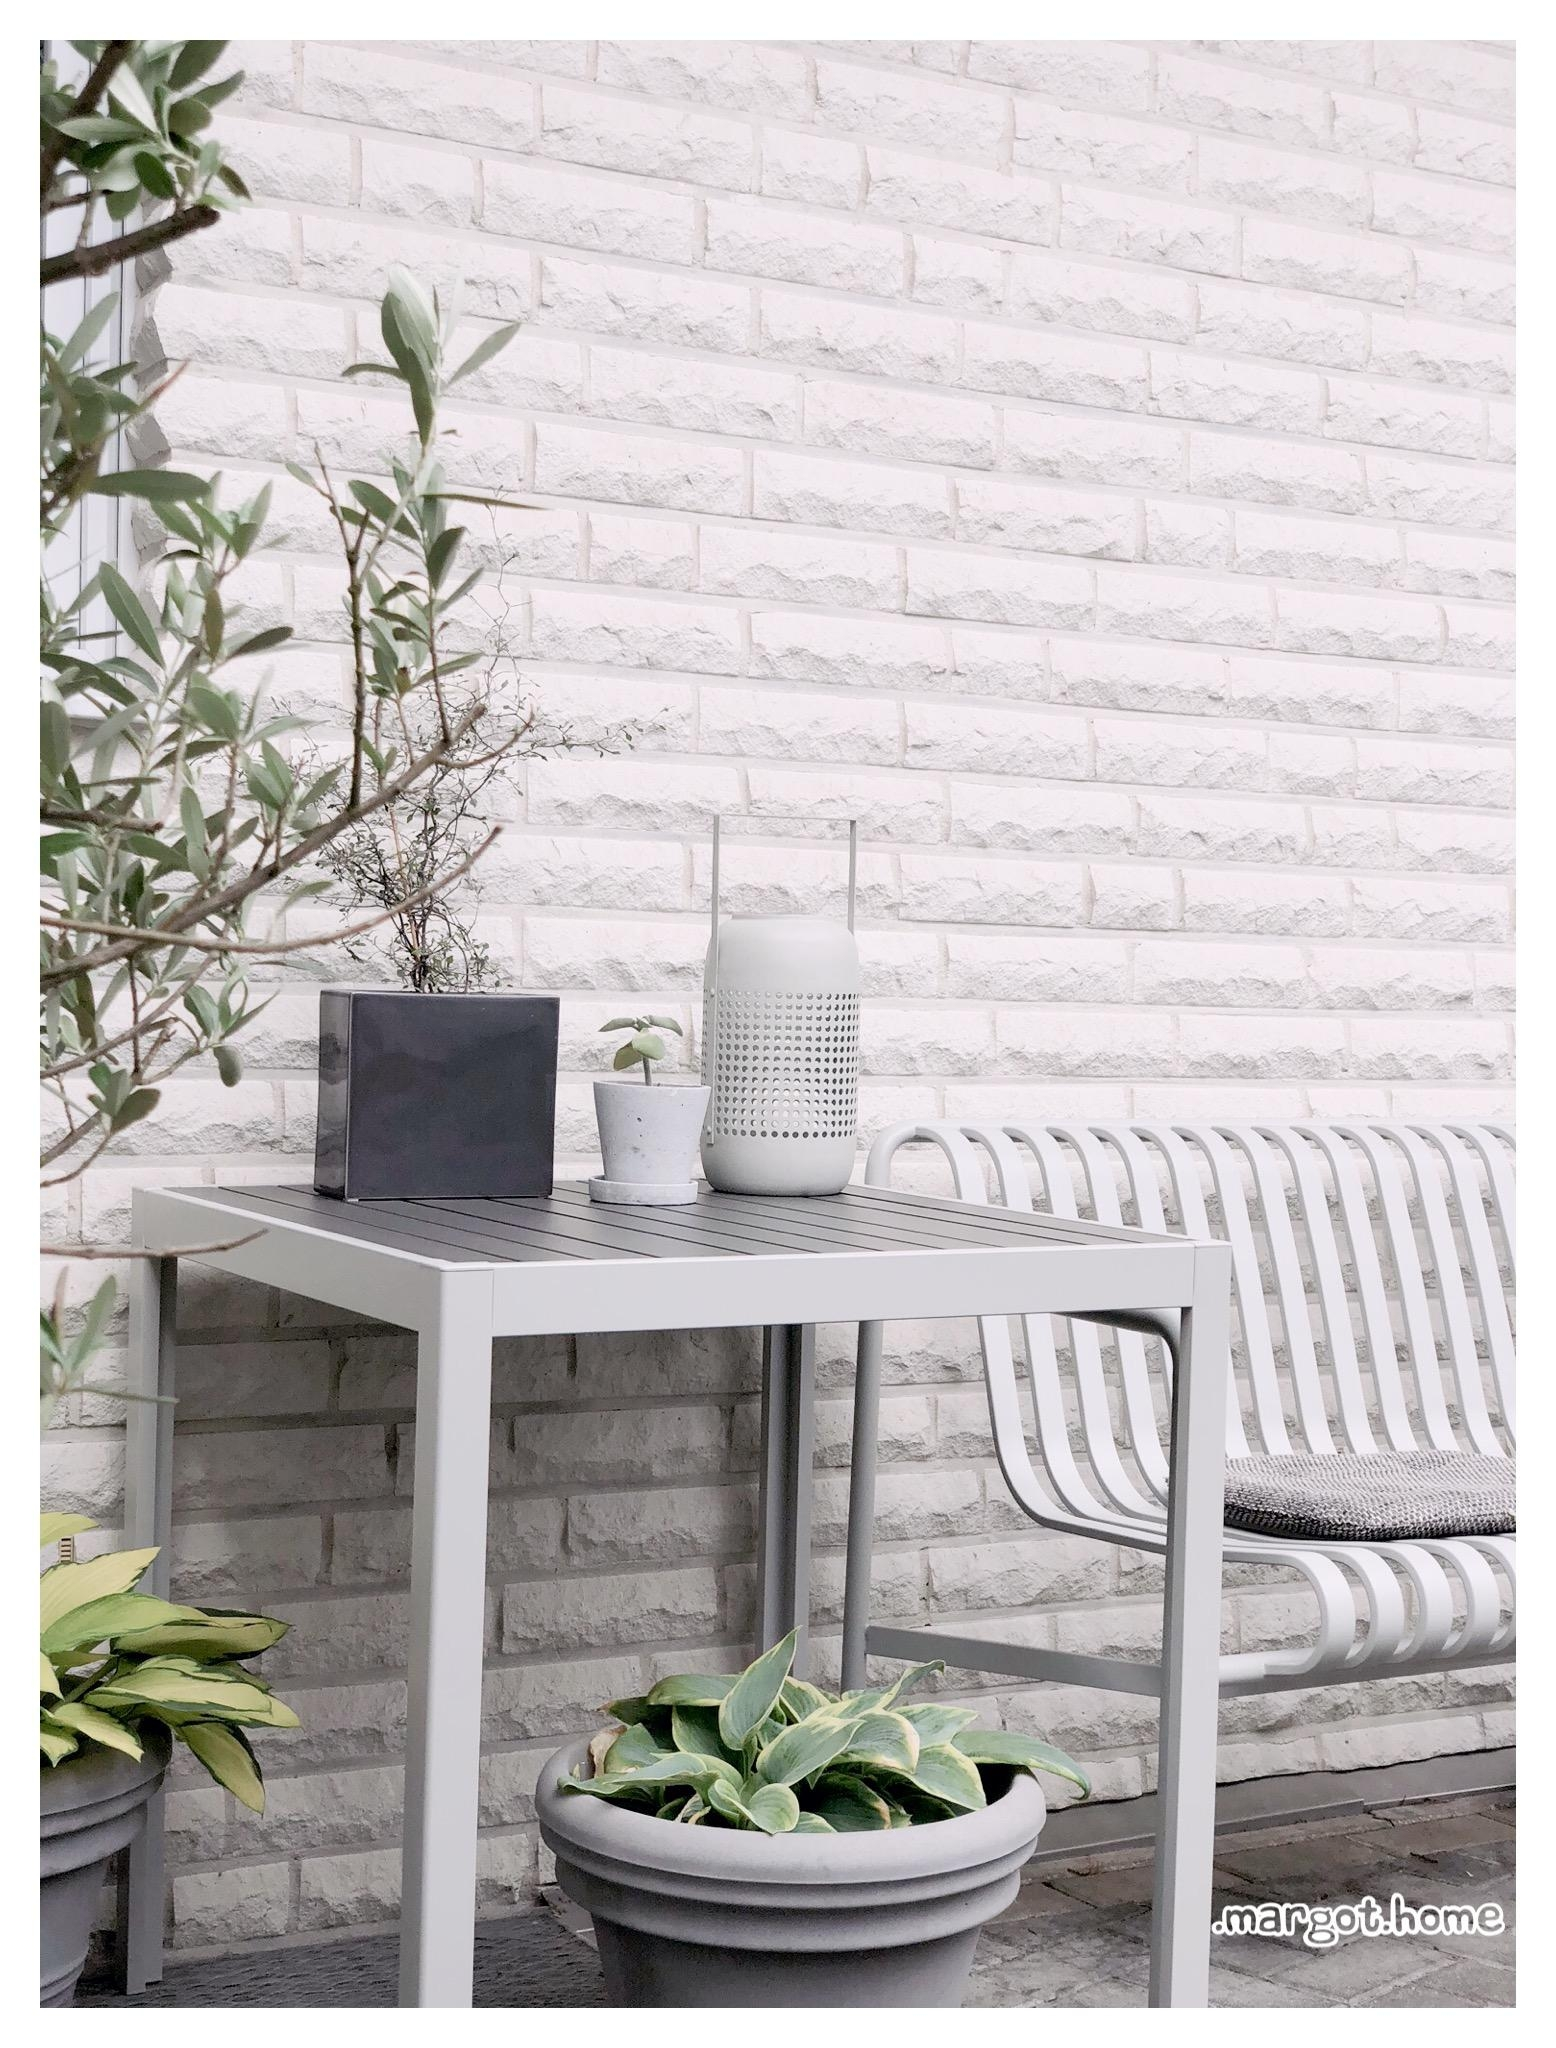 Eine Outdoor Ecke in Schatten?